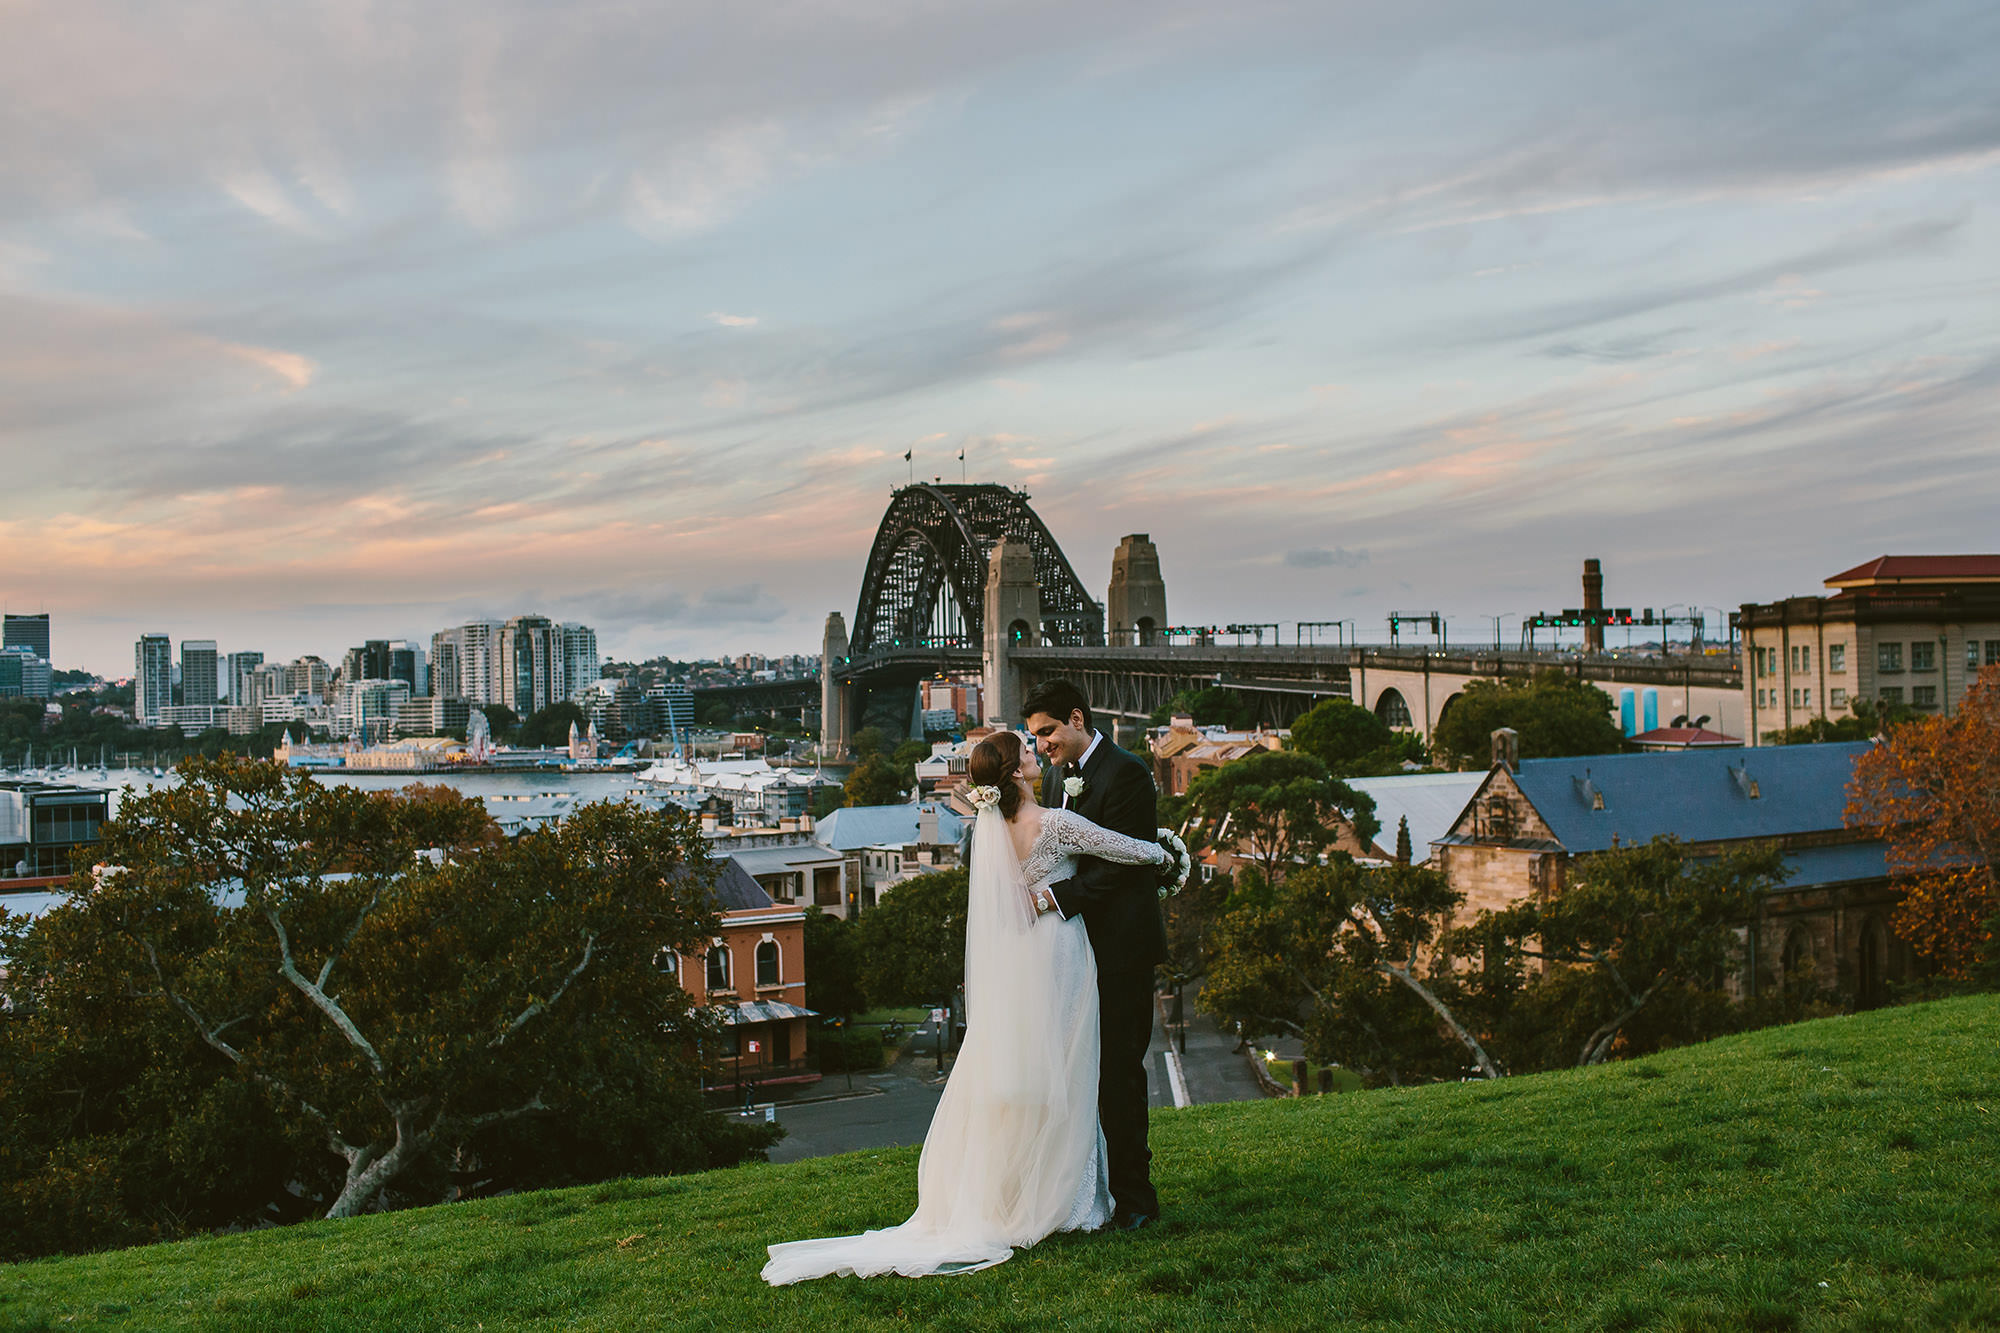 Small wedding venues Sydney observatory hill